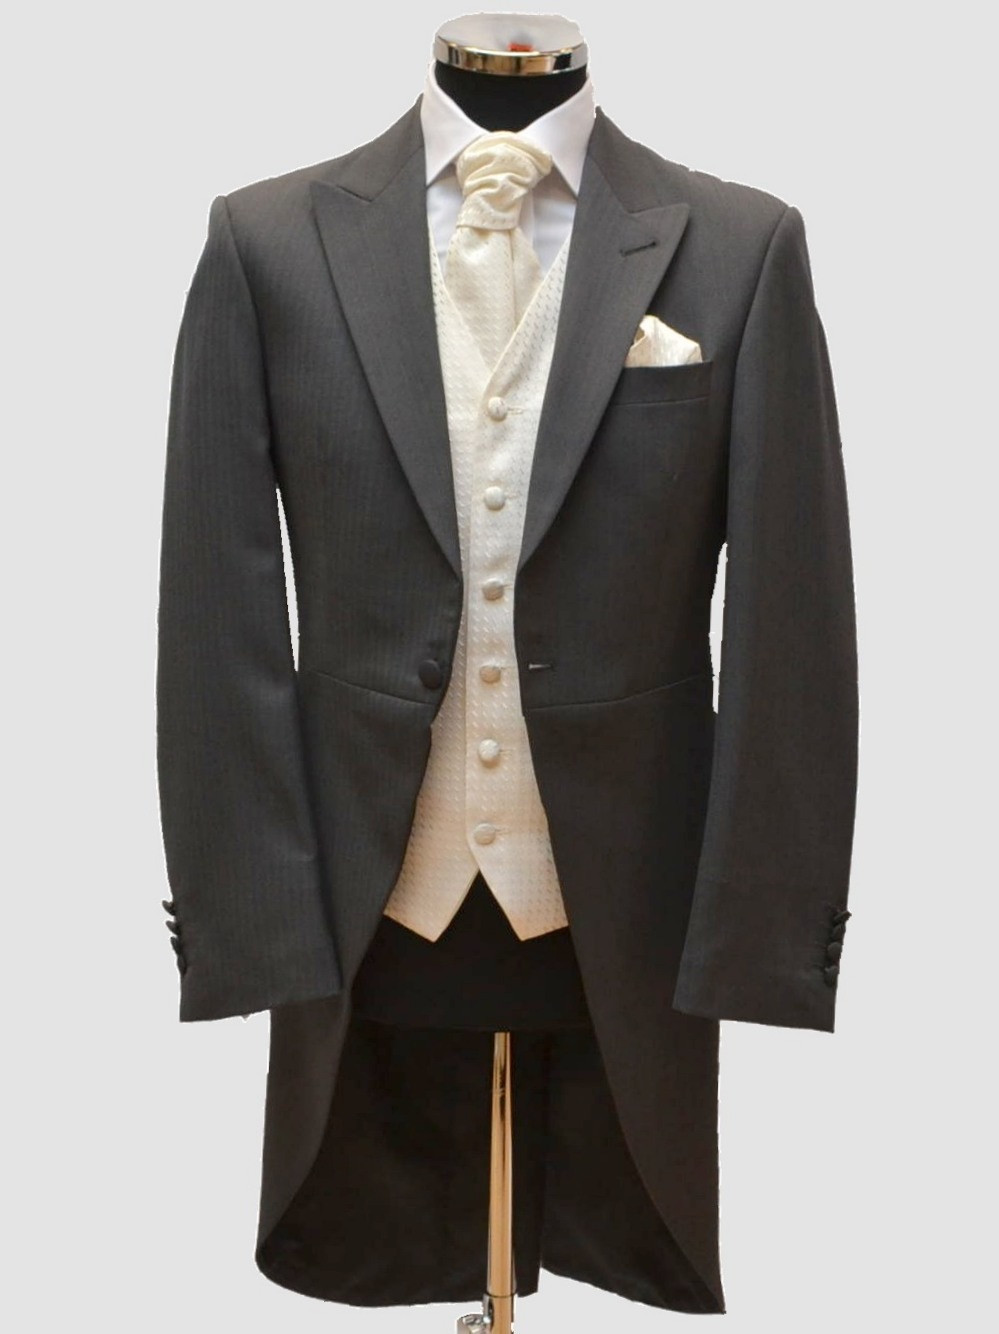 H-Bone Grey with Panache Ivory WC.jpg